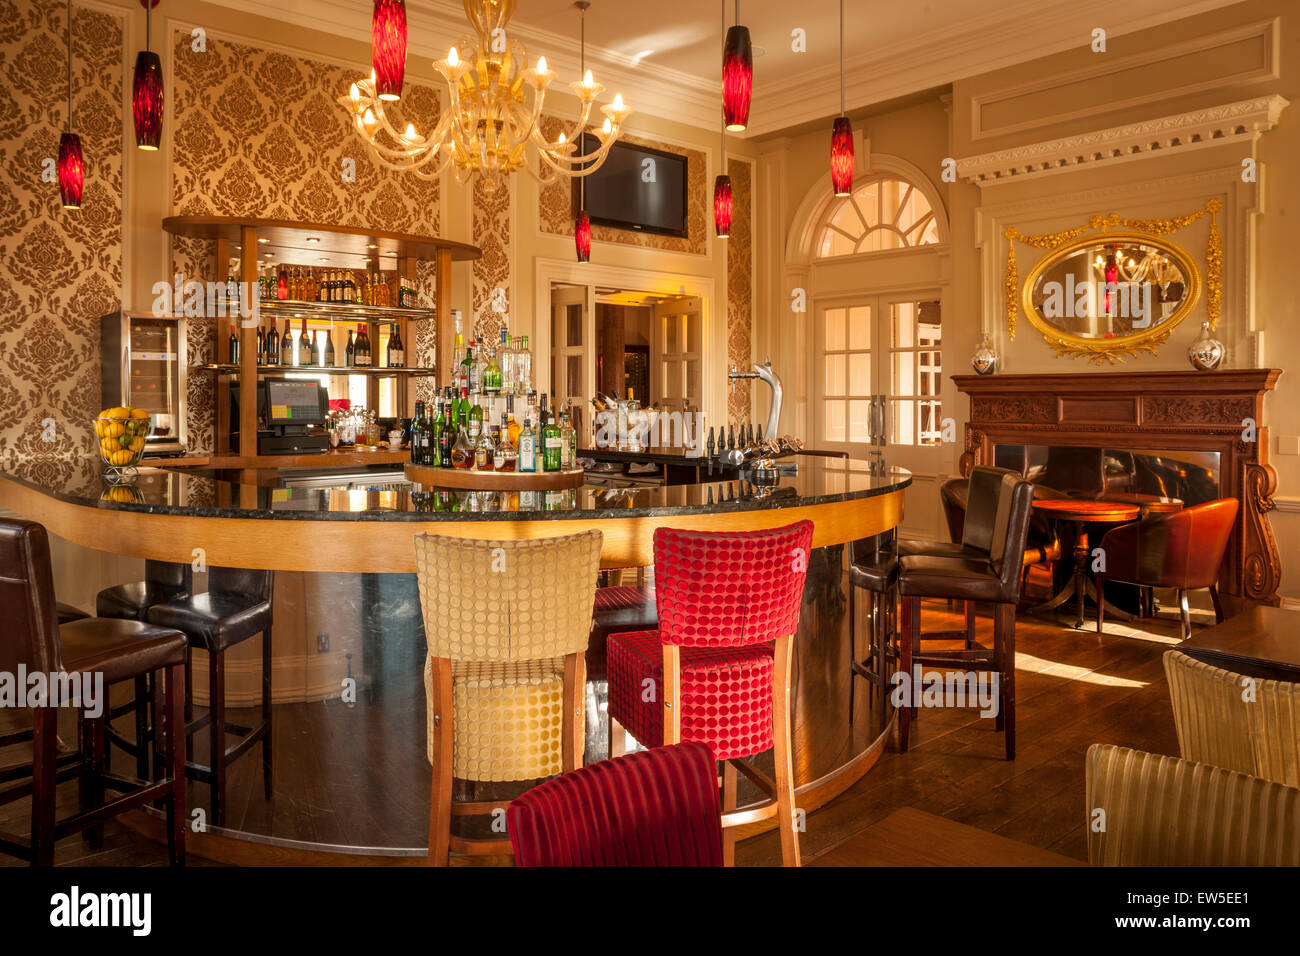 Bar in an upmarket hotel - Stock Image